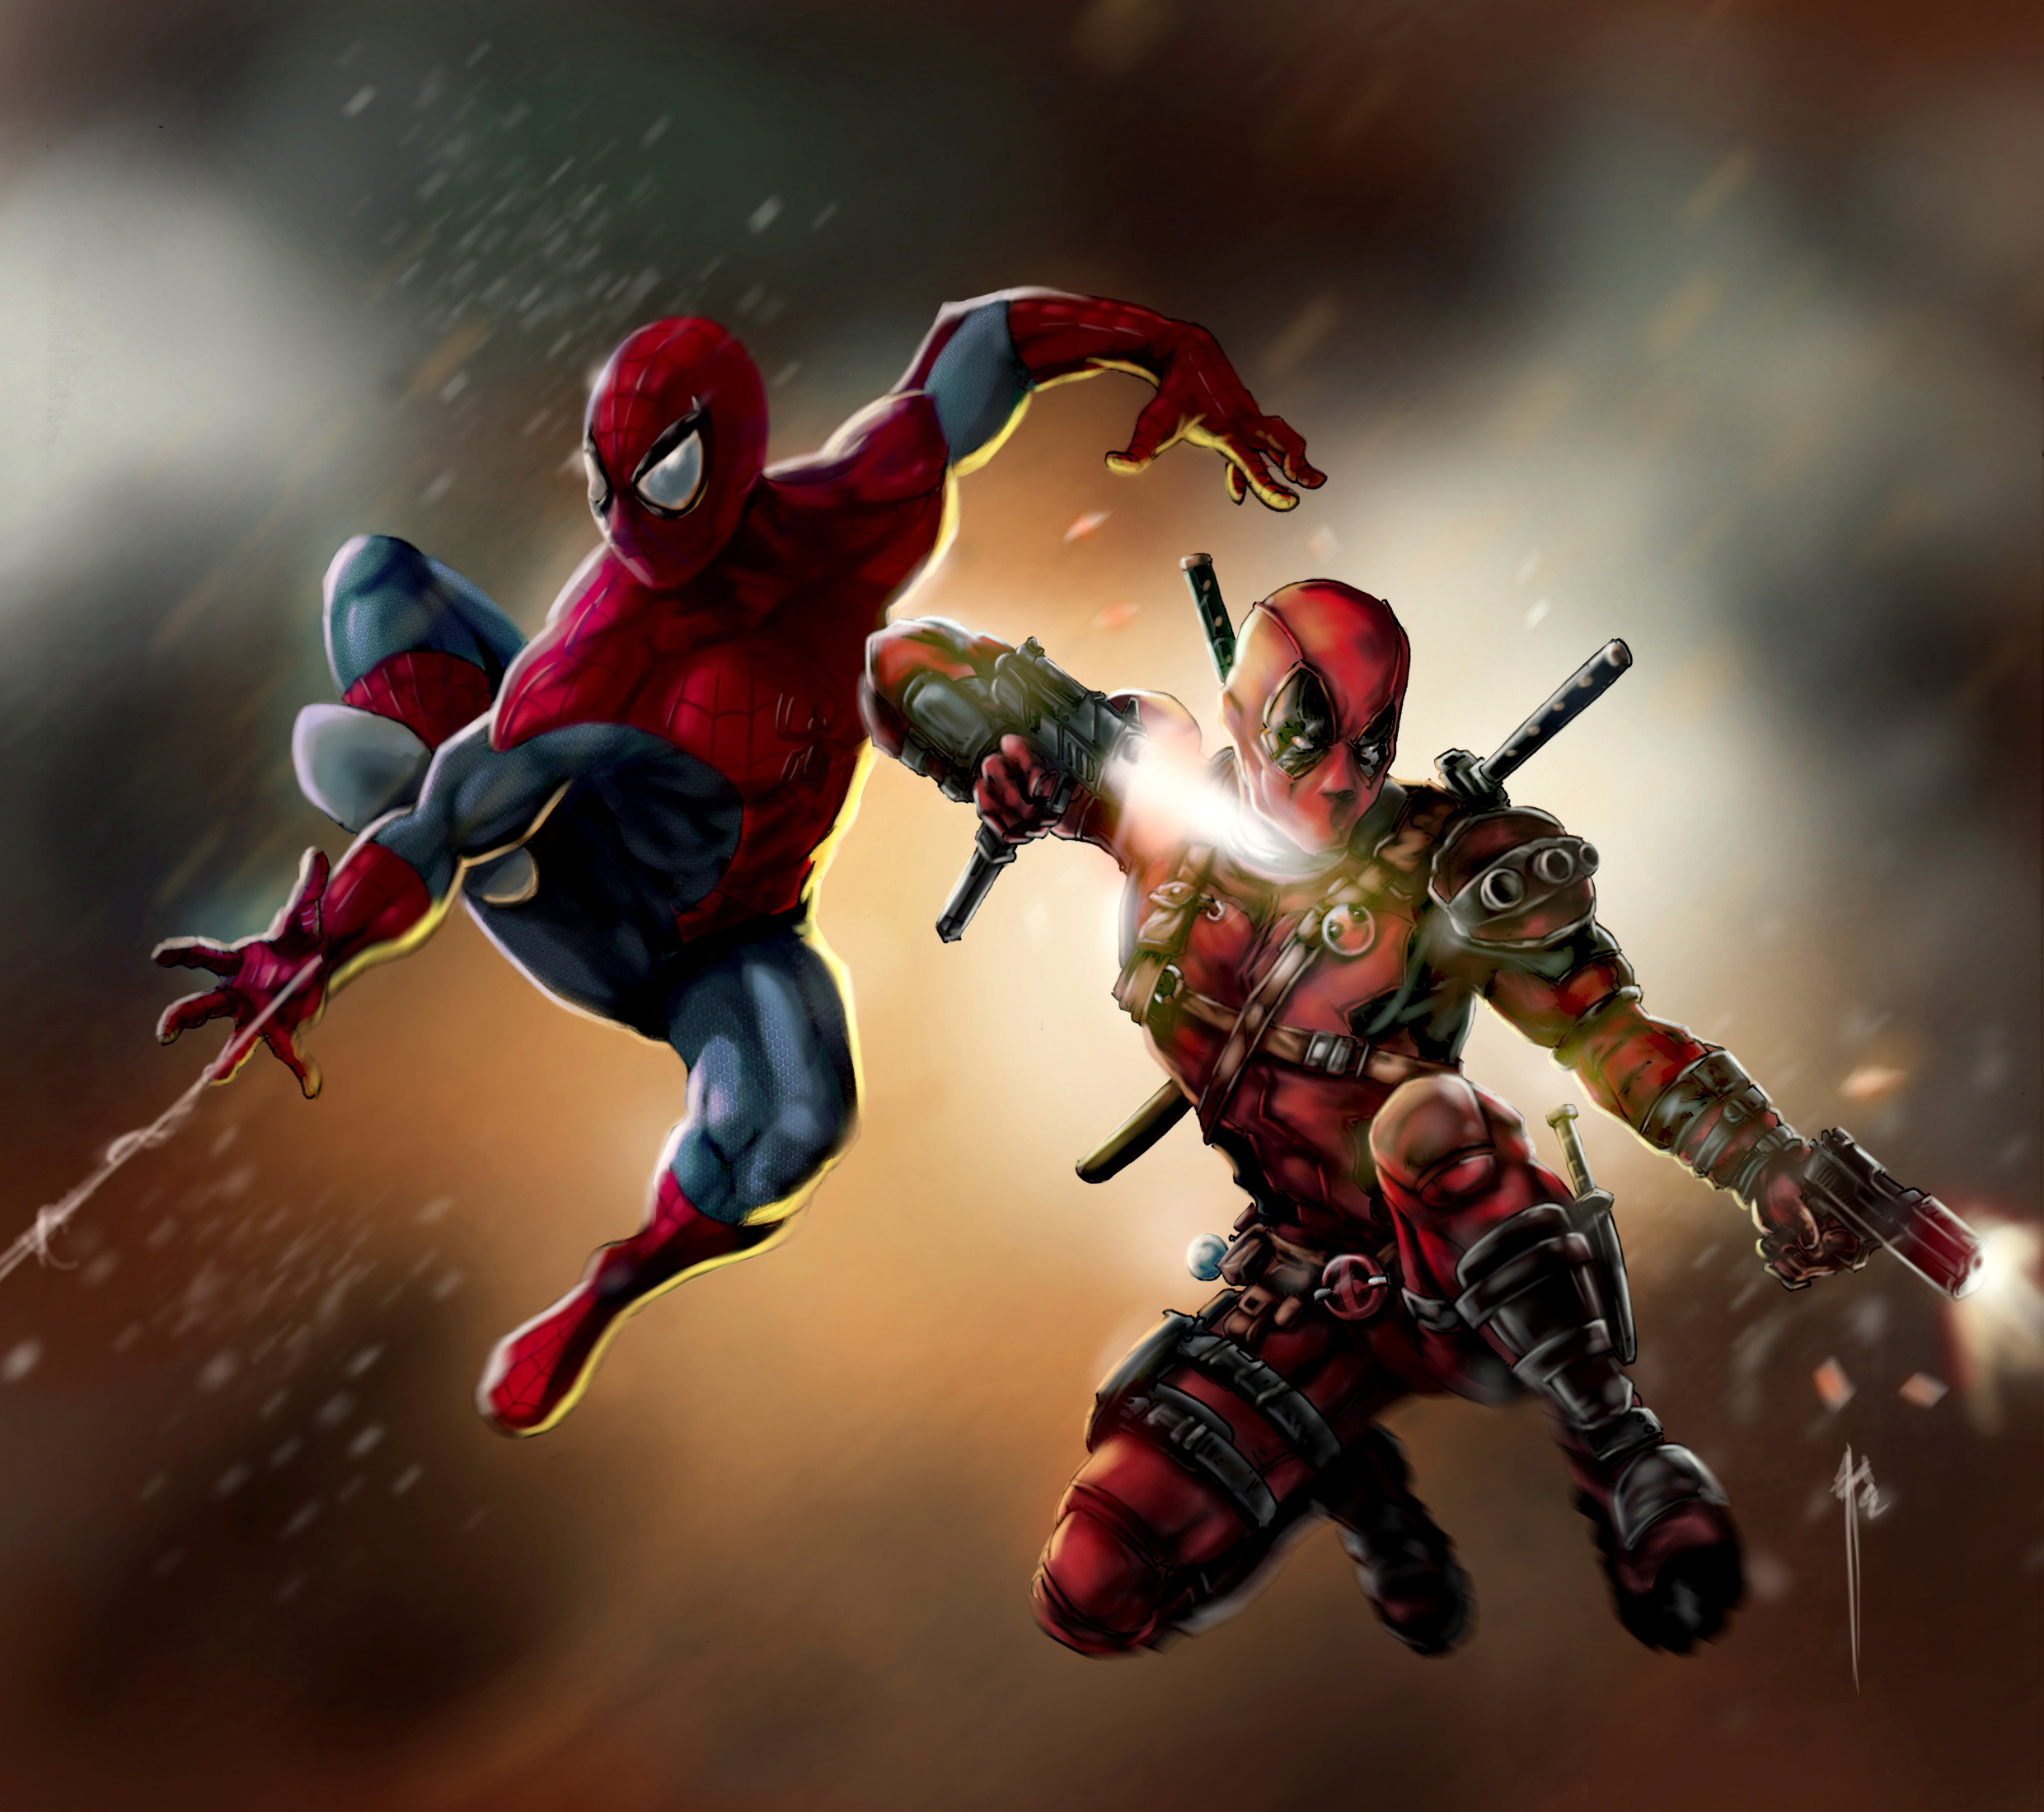 Deadpool And Spiderman Hd Superheroes 4k Wallpapers Images